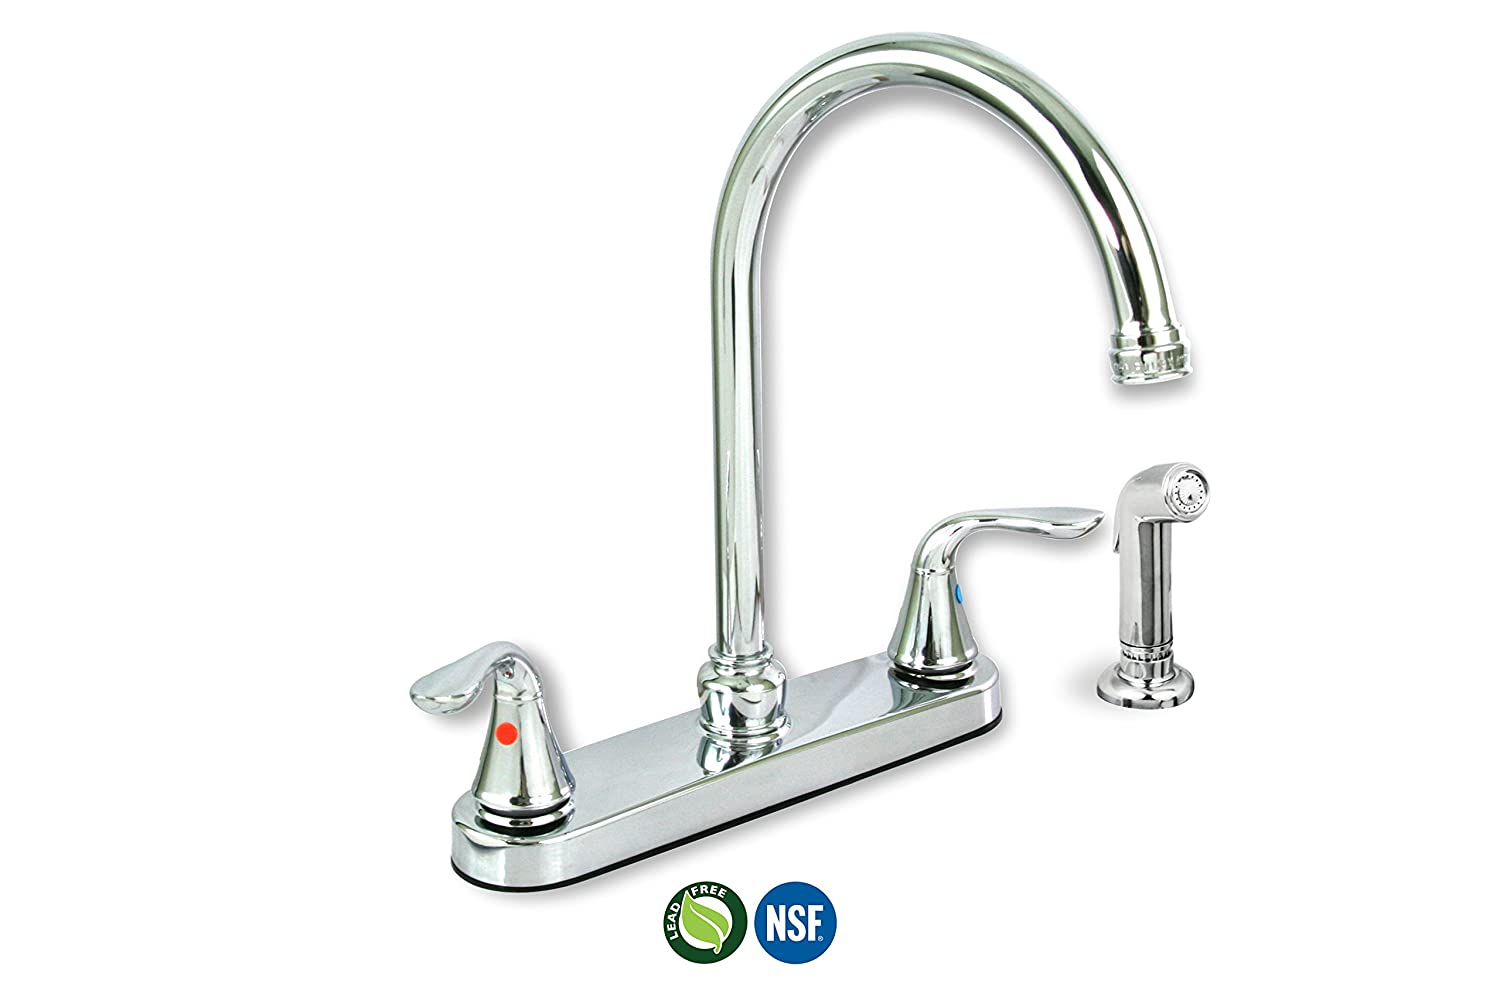 Everflow Supplies 17188 Lead Free Two-Handle Kitchen Faucet with Sprayer, Chrome